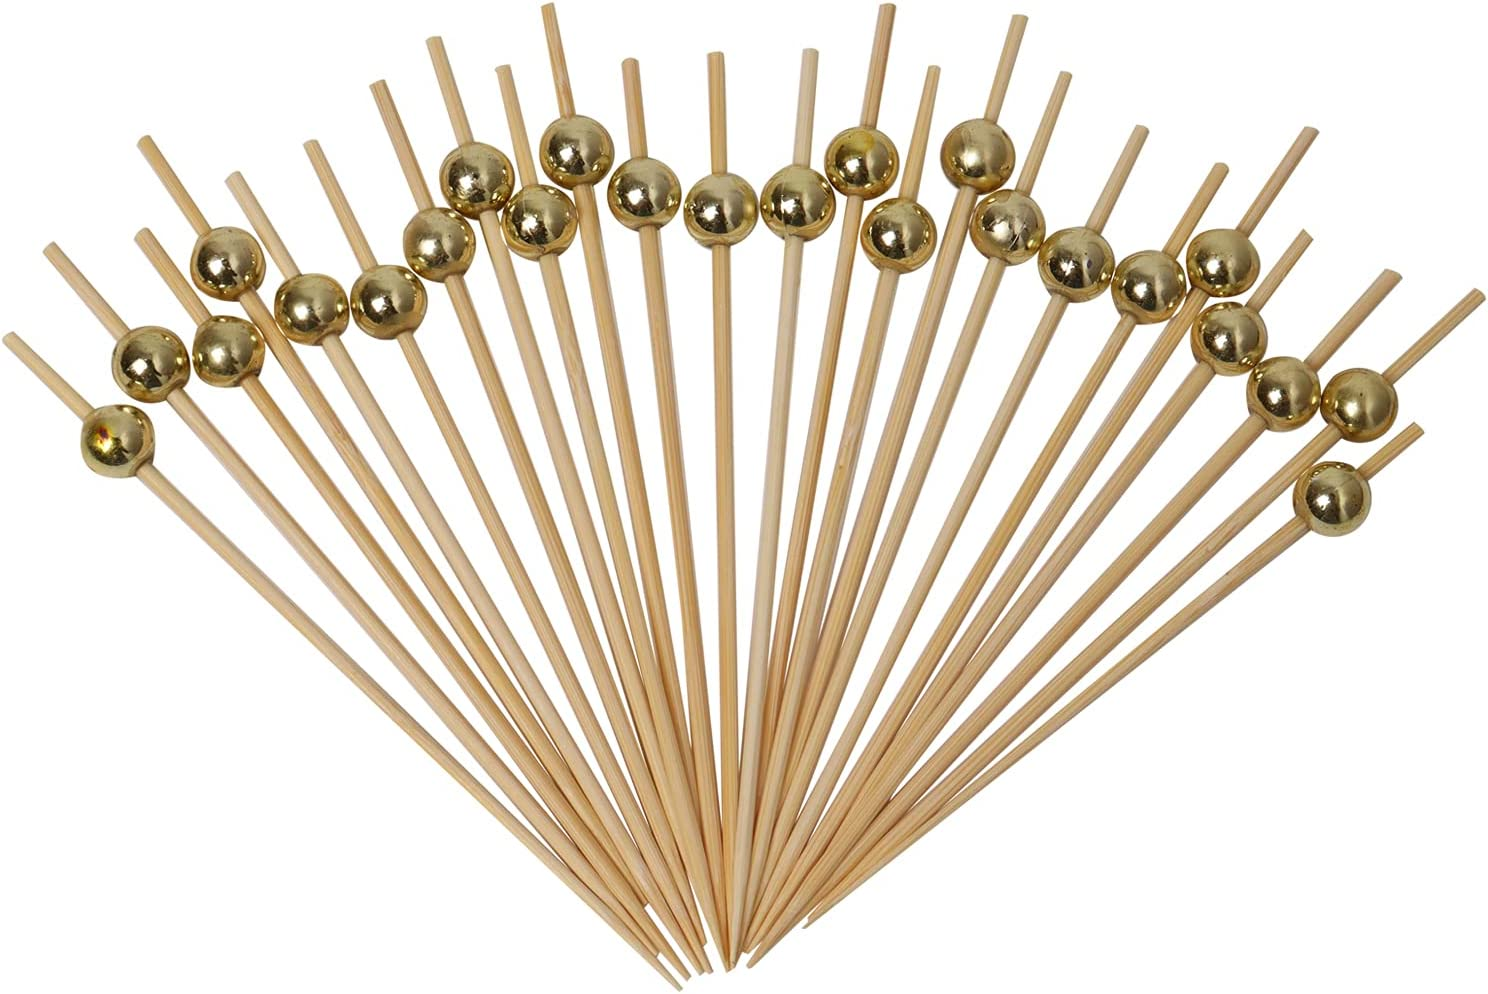 Aqwery 200pcs Disposable Bamboo Cocktail Picks Cocktail Pick Food Appetizer Toothpick 4.7 Inch Fruit Toothpick with Gold Pearl,Party Toothpick for Appetizer and Cocktail Drinks